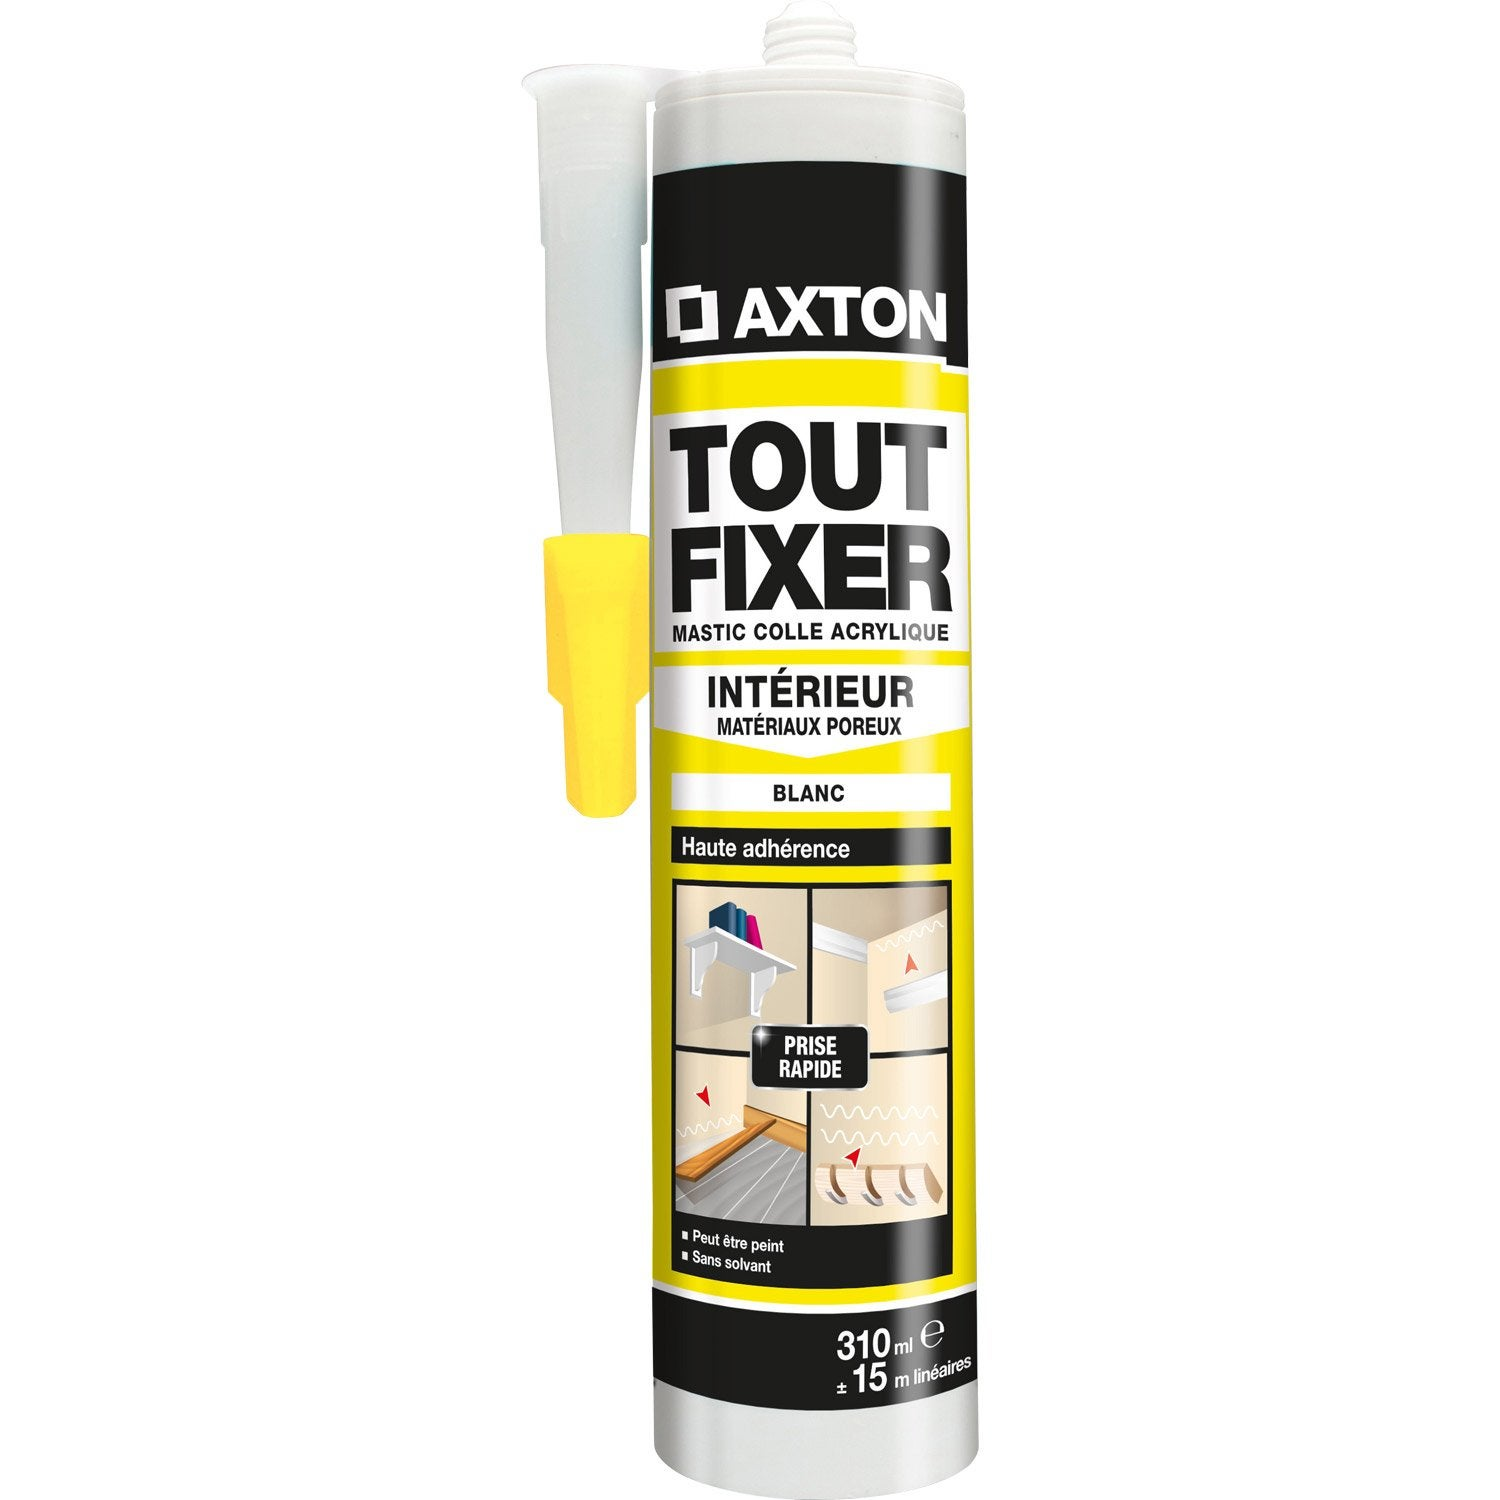 Colle mastic tout fixer axton 310 ml leroy merlin for Colle sur carrelage